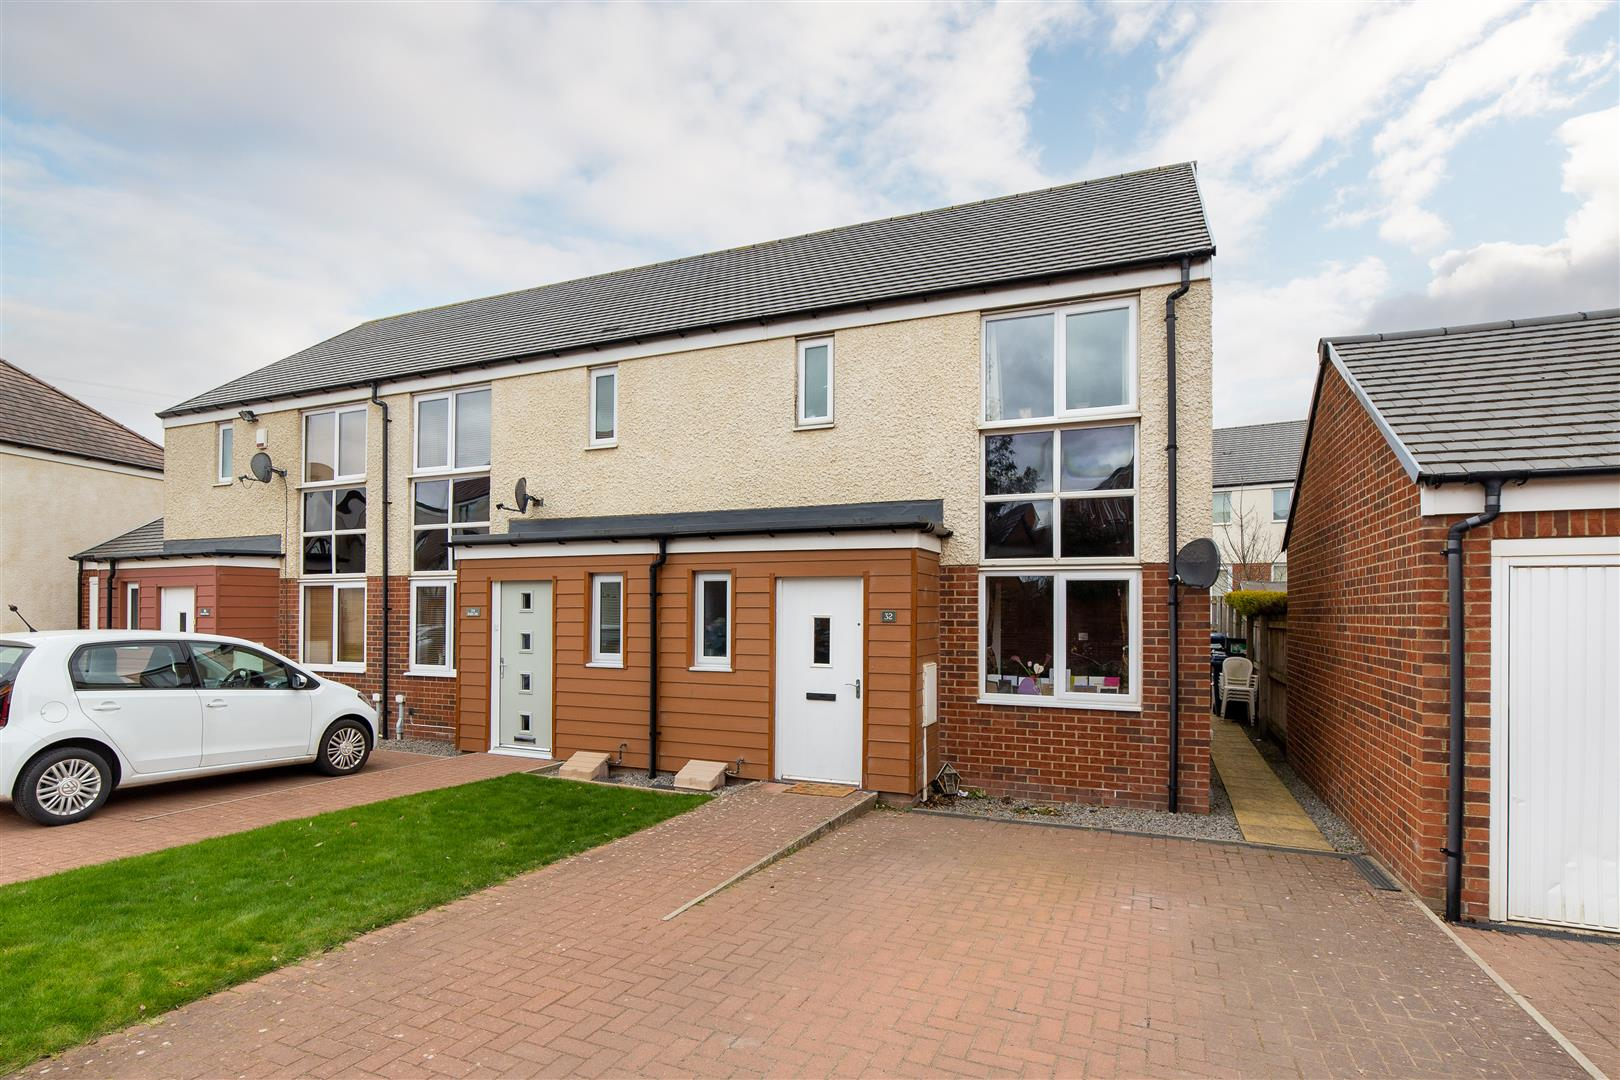 3 bed end of terrace house for sale in Newcastle Upon Tyne, NE13 9GB, NE13